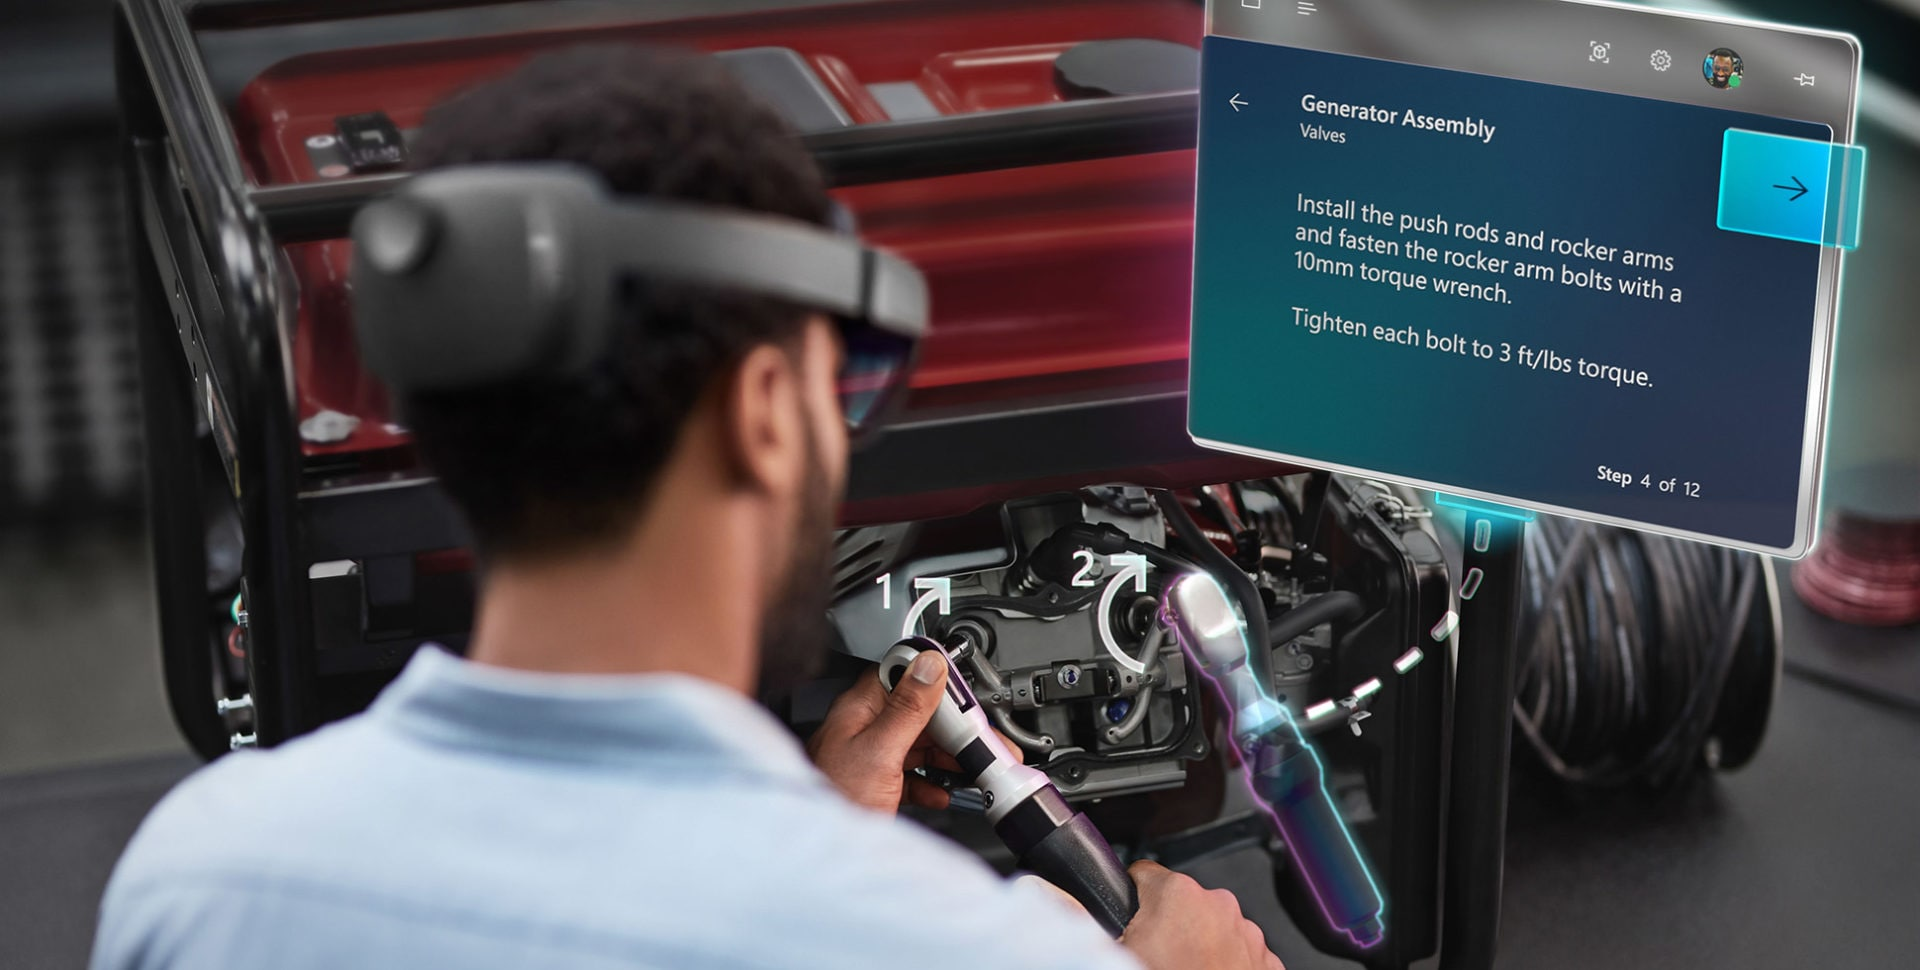 A Hololens 2 user in automotive application